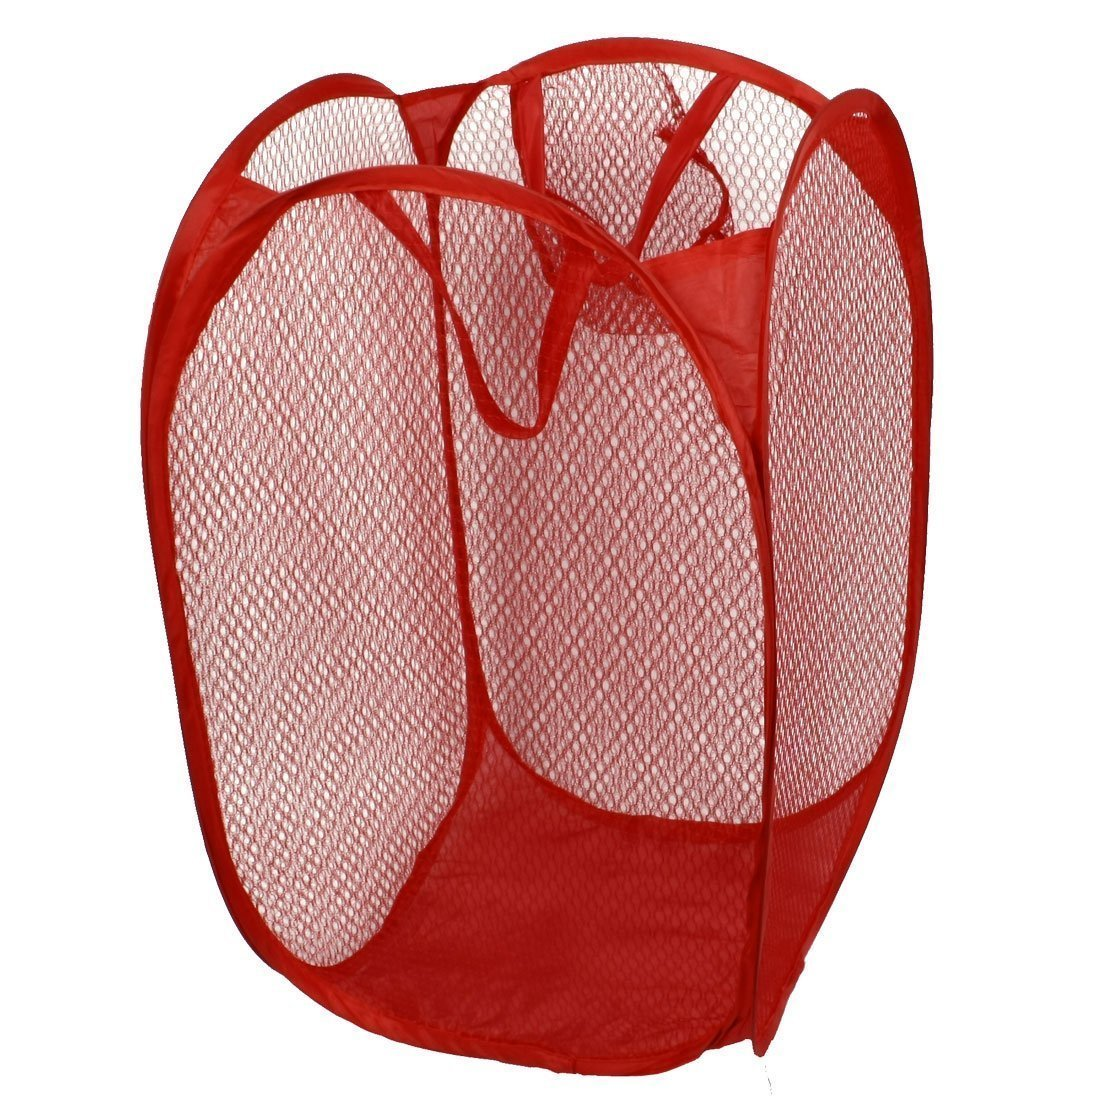 Dirty Clothes Basket - SODIAL(R) Household Dirty Clothes Laundry Folding Mesh Bag Basket Holder Red AEQW-WER-AW137849